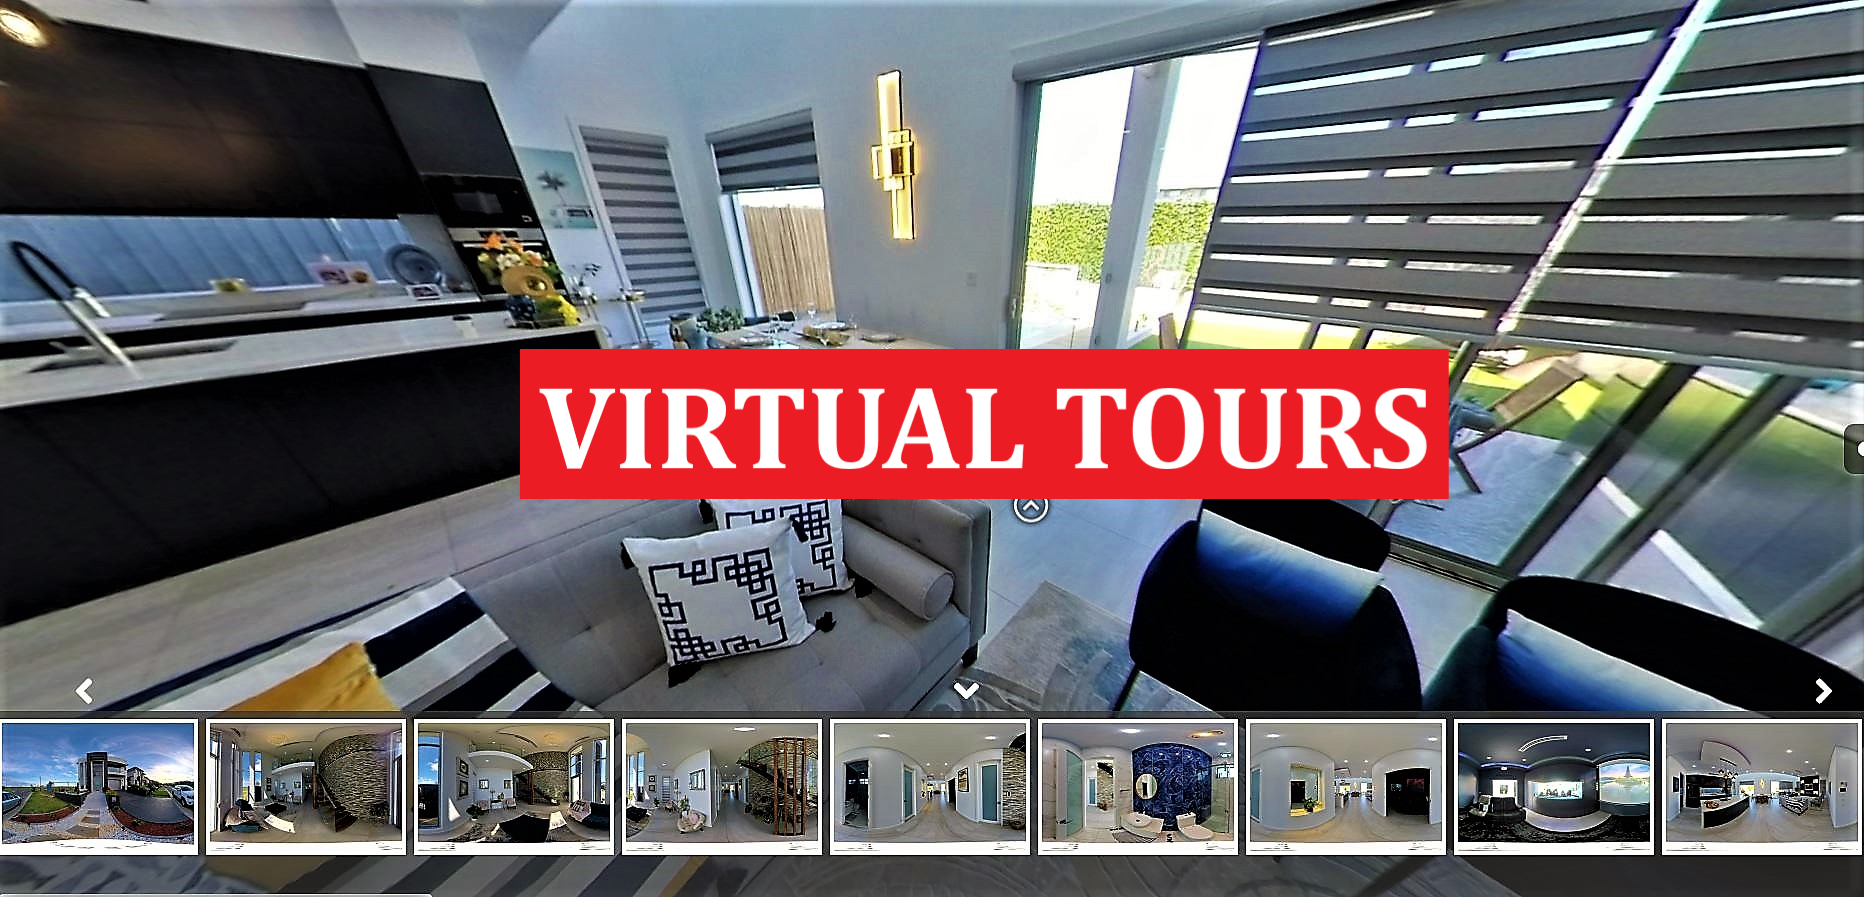 Are Virtual Tours the new Virtual Reality for Businesses?